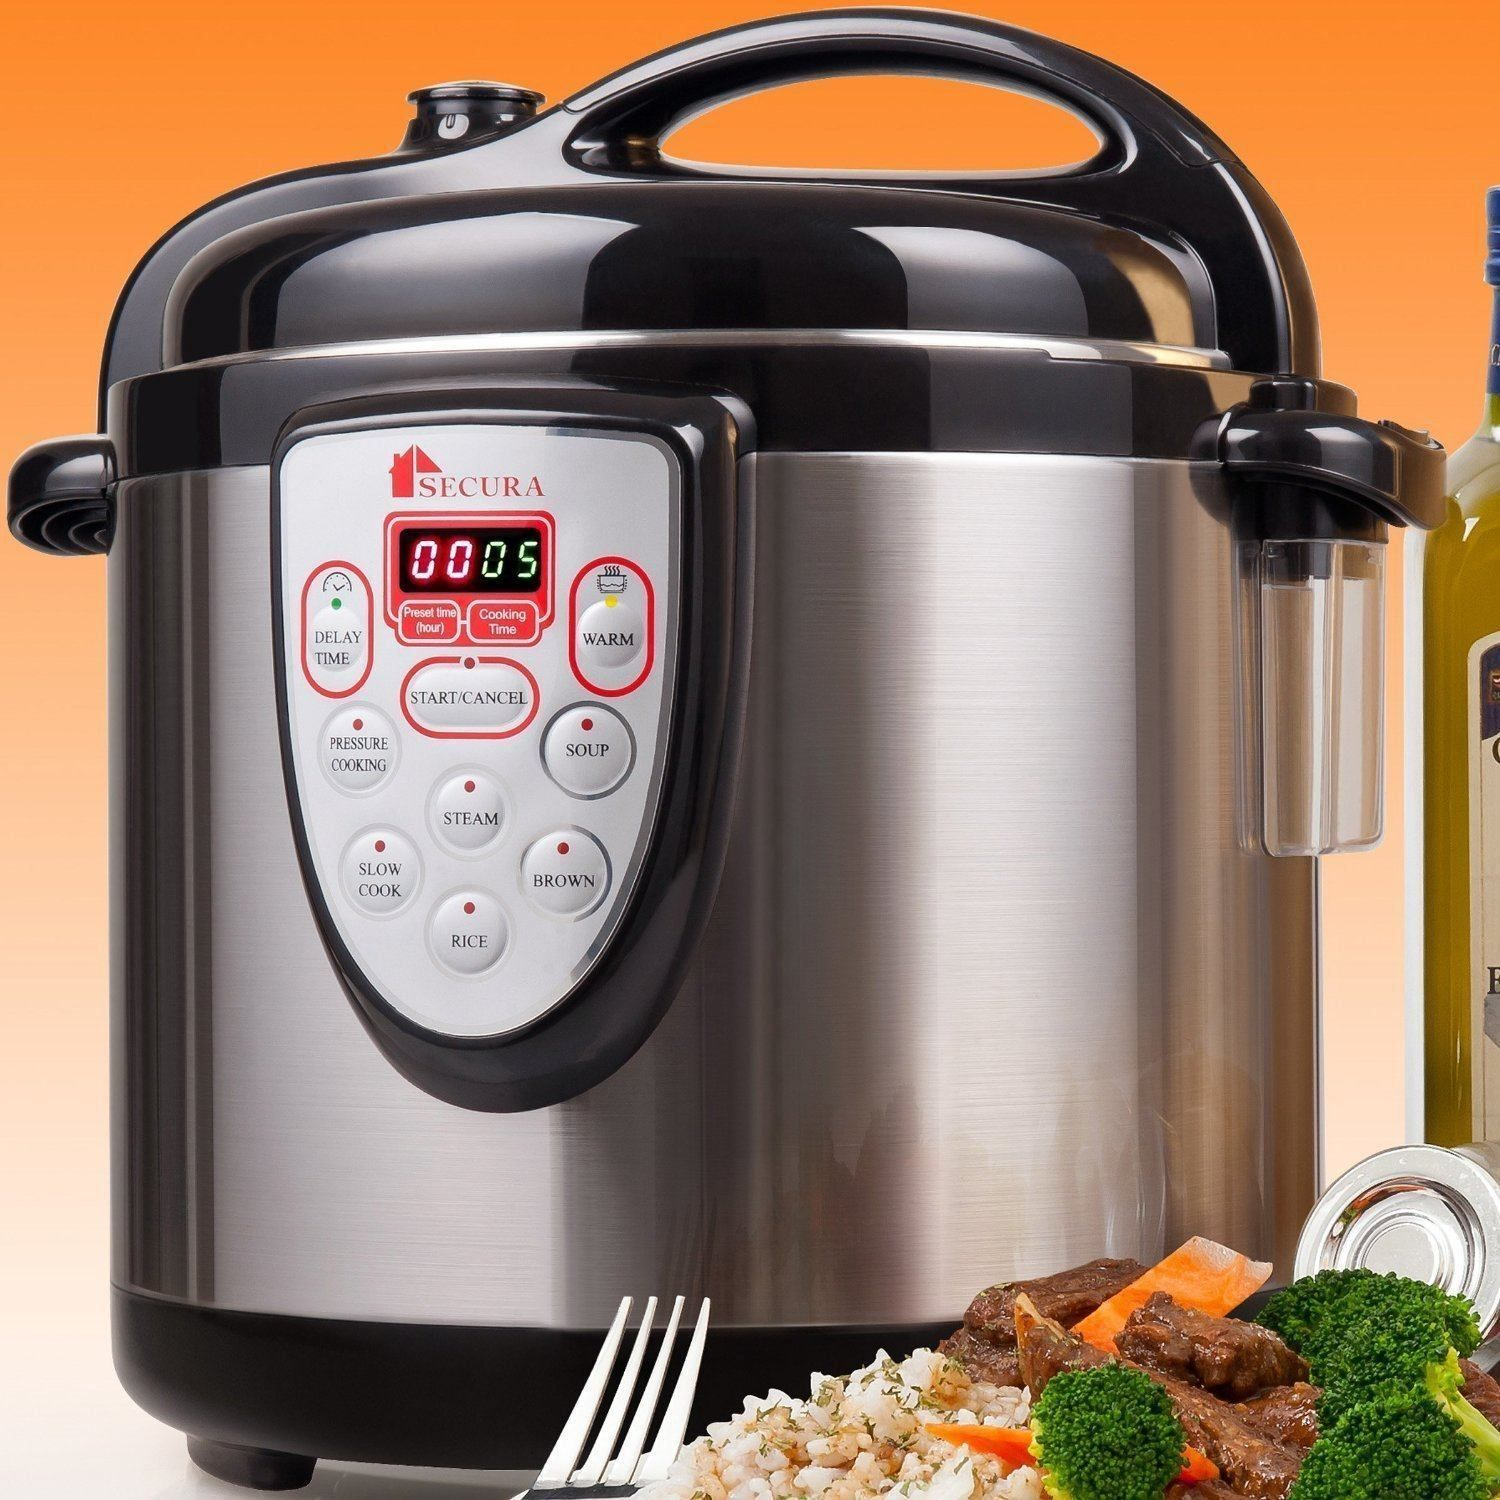 The fagor america lux pressure cooker acts as a in gadget for